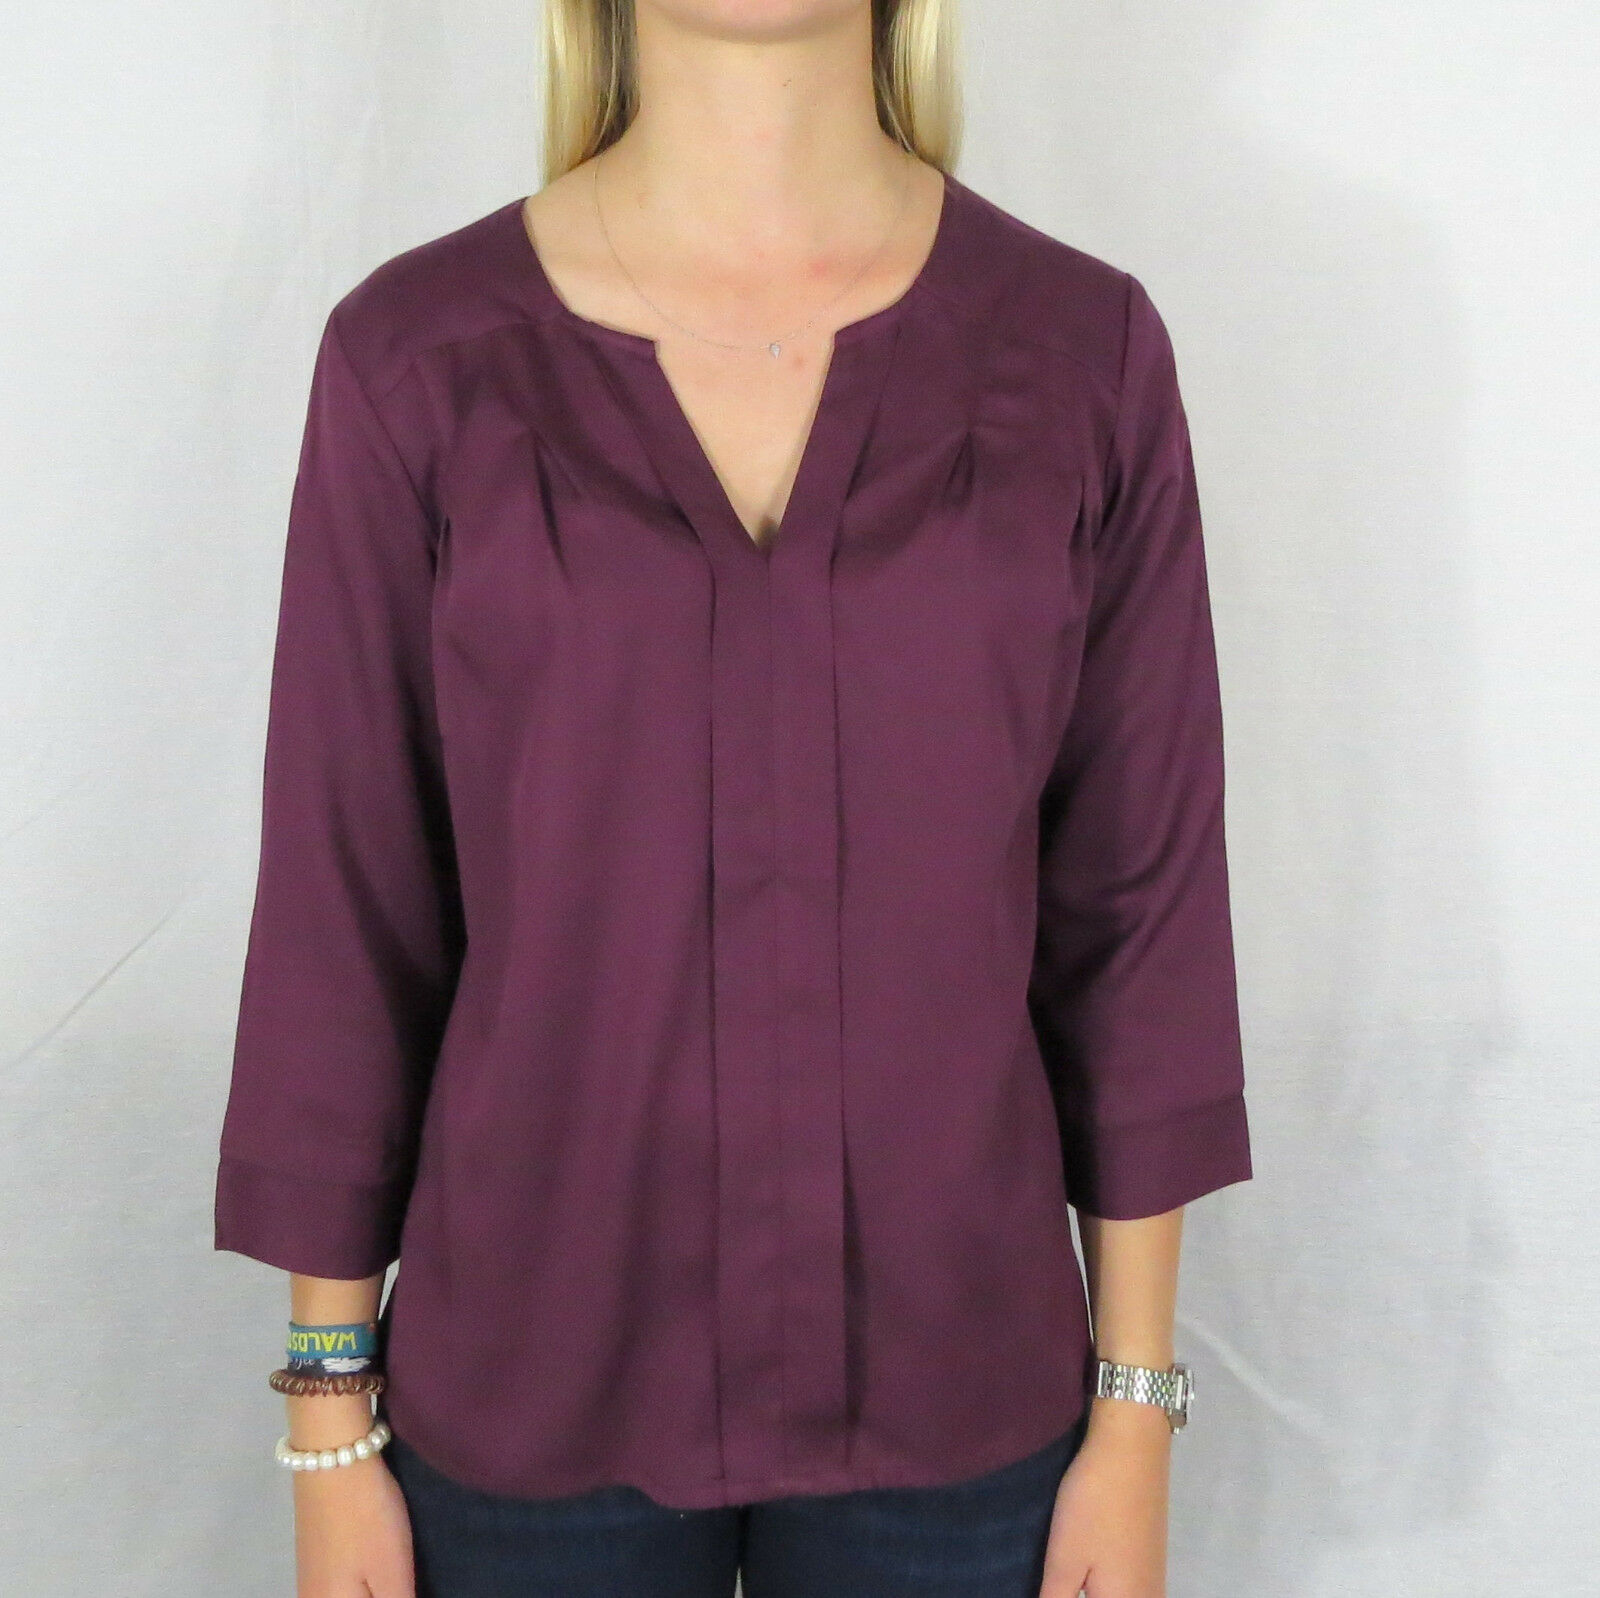 THOUGHT Victoria bluese Hemd Shirt heather red WWT3419